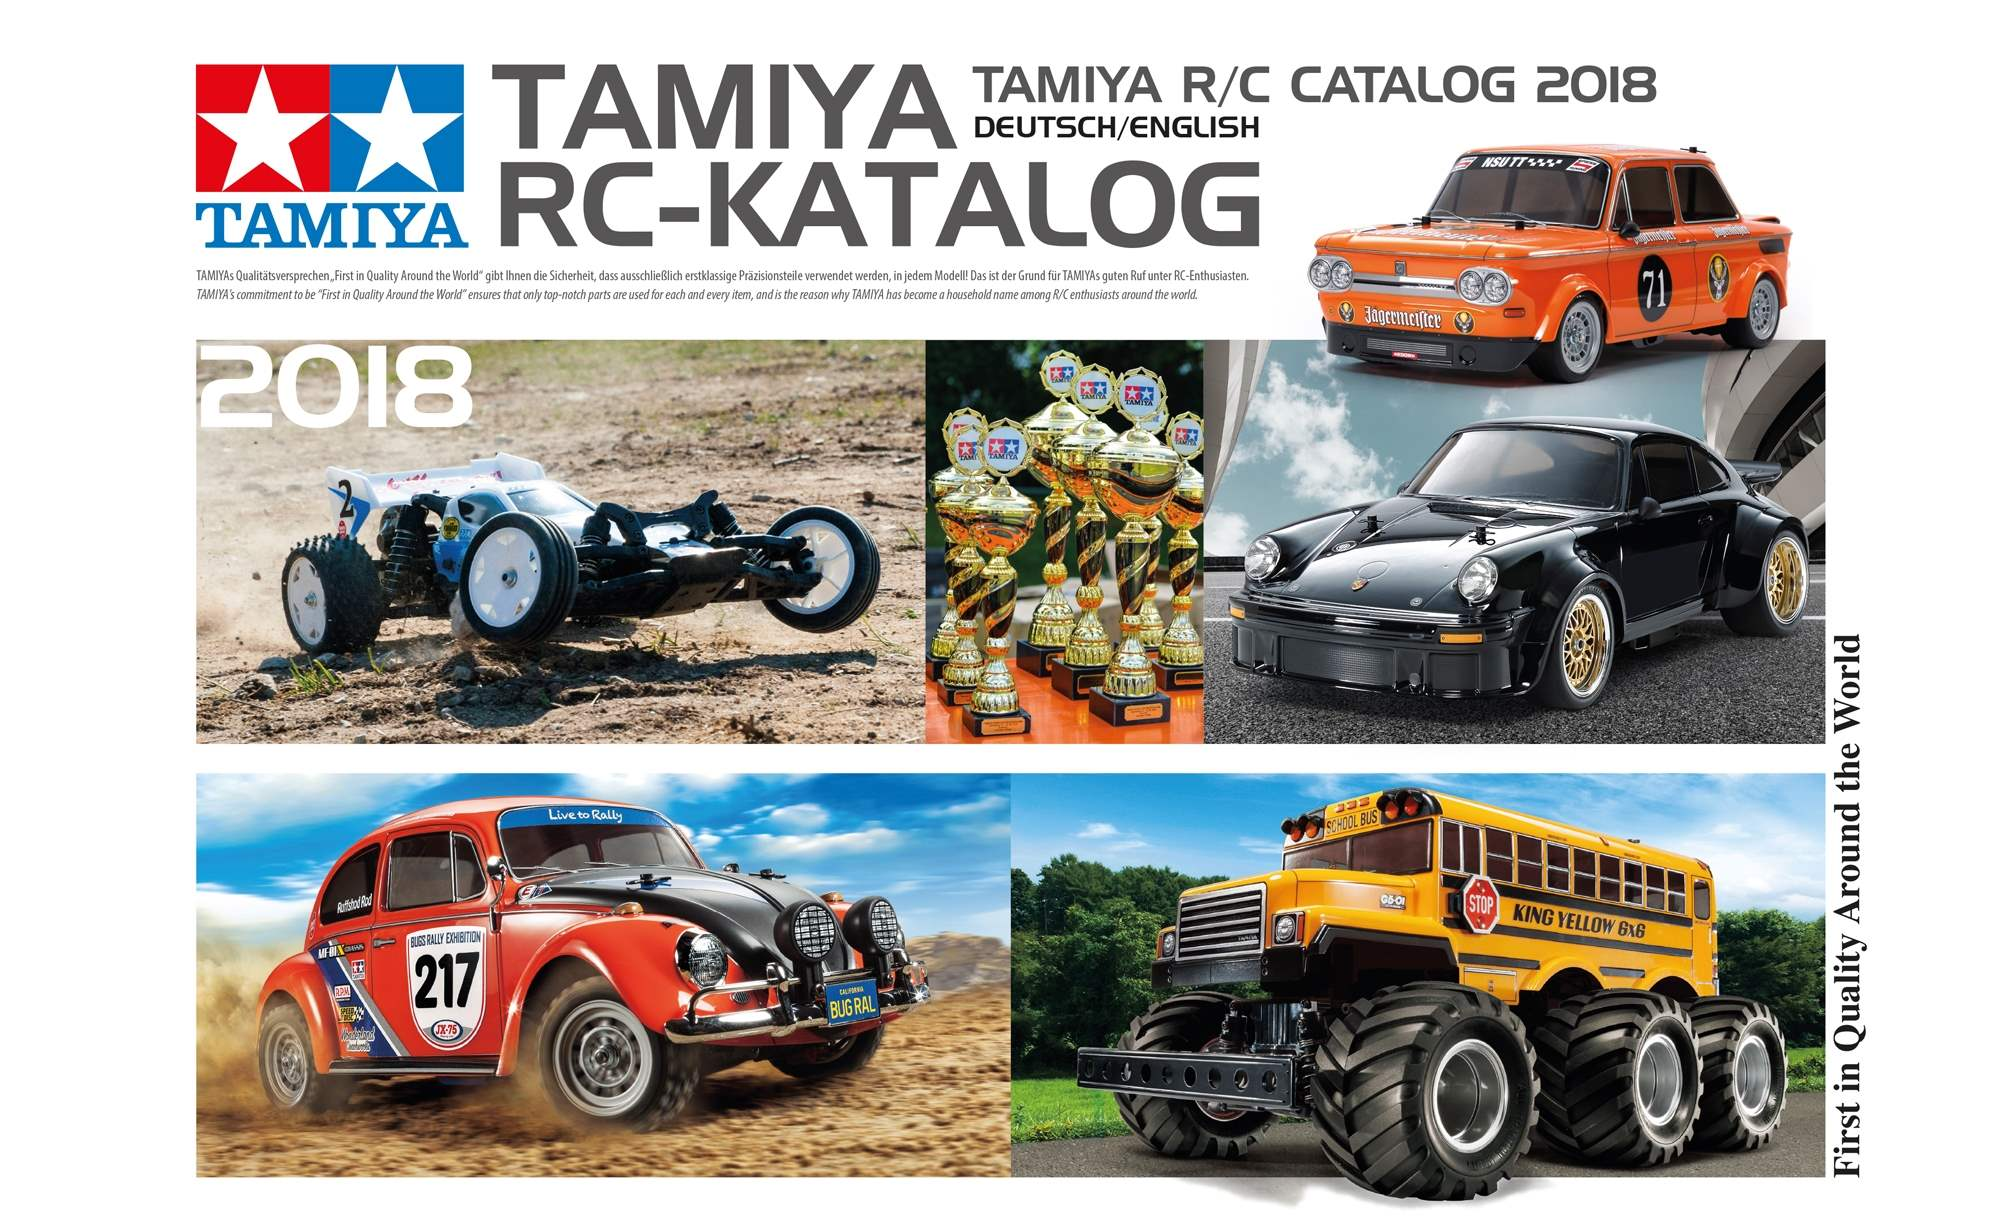 radio controlled cars videos with German English Tamiya Rc Catalog 2018 on Ambi Pur 3volution Refill Vanilla 282002 moreover Calvin Klein Ck In2u Him 150ml Edt 299261 as well Watch furthermore Tamiya Hotshot 1985 furthermore File Model Nascar Sprint cars in action.